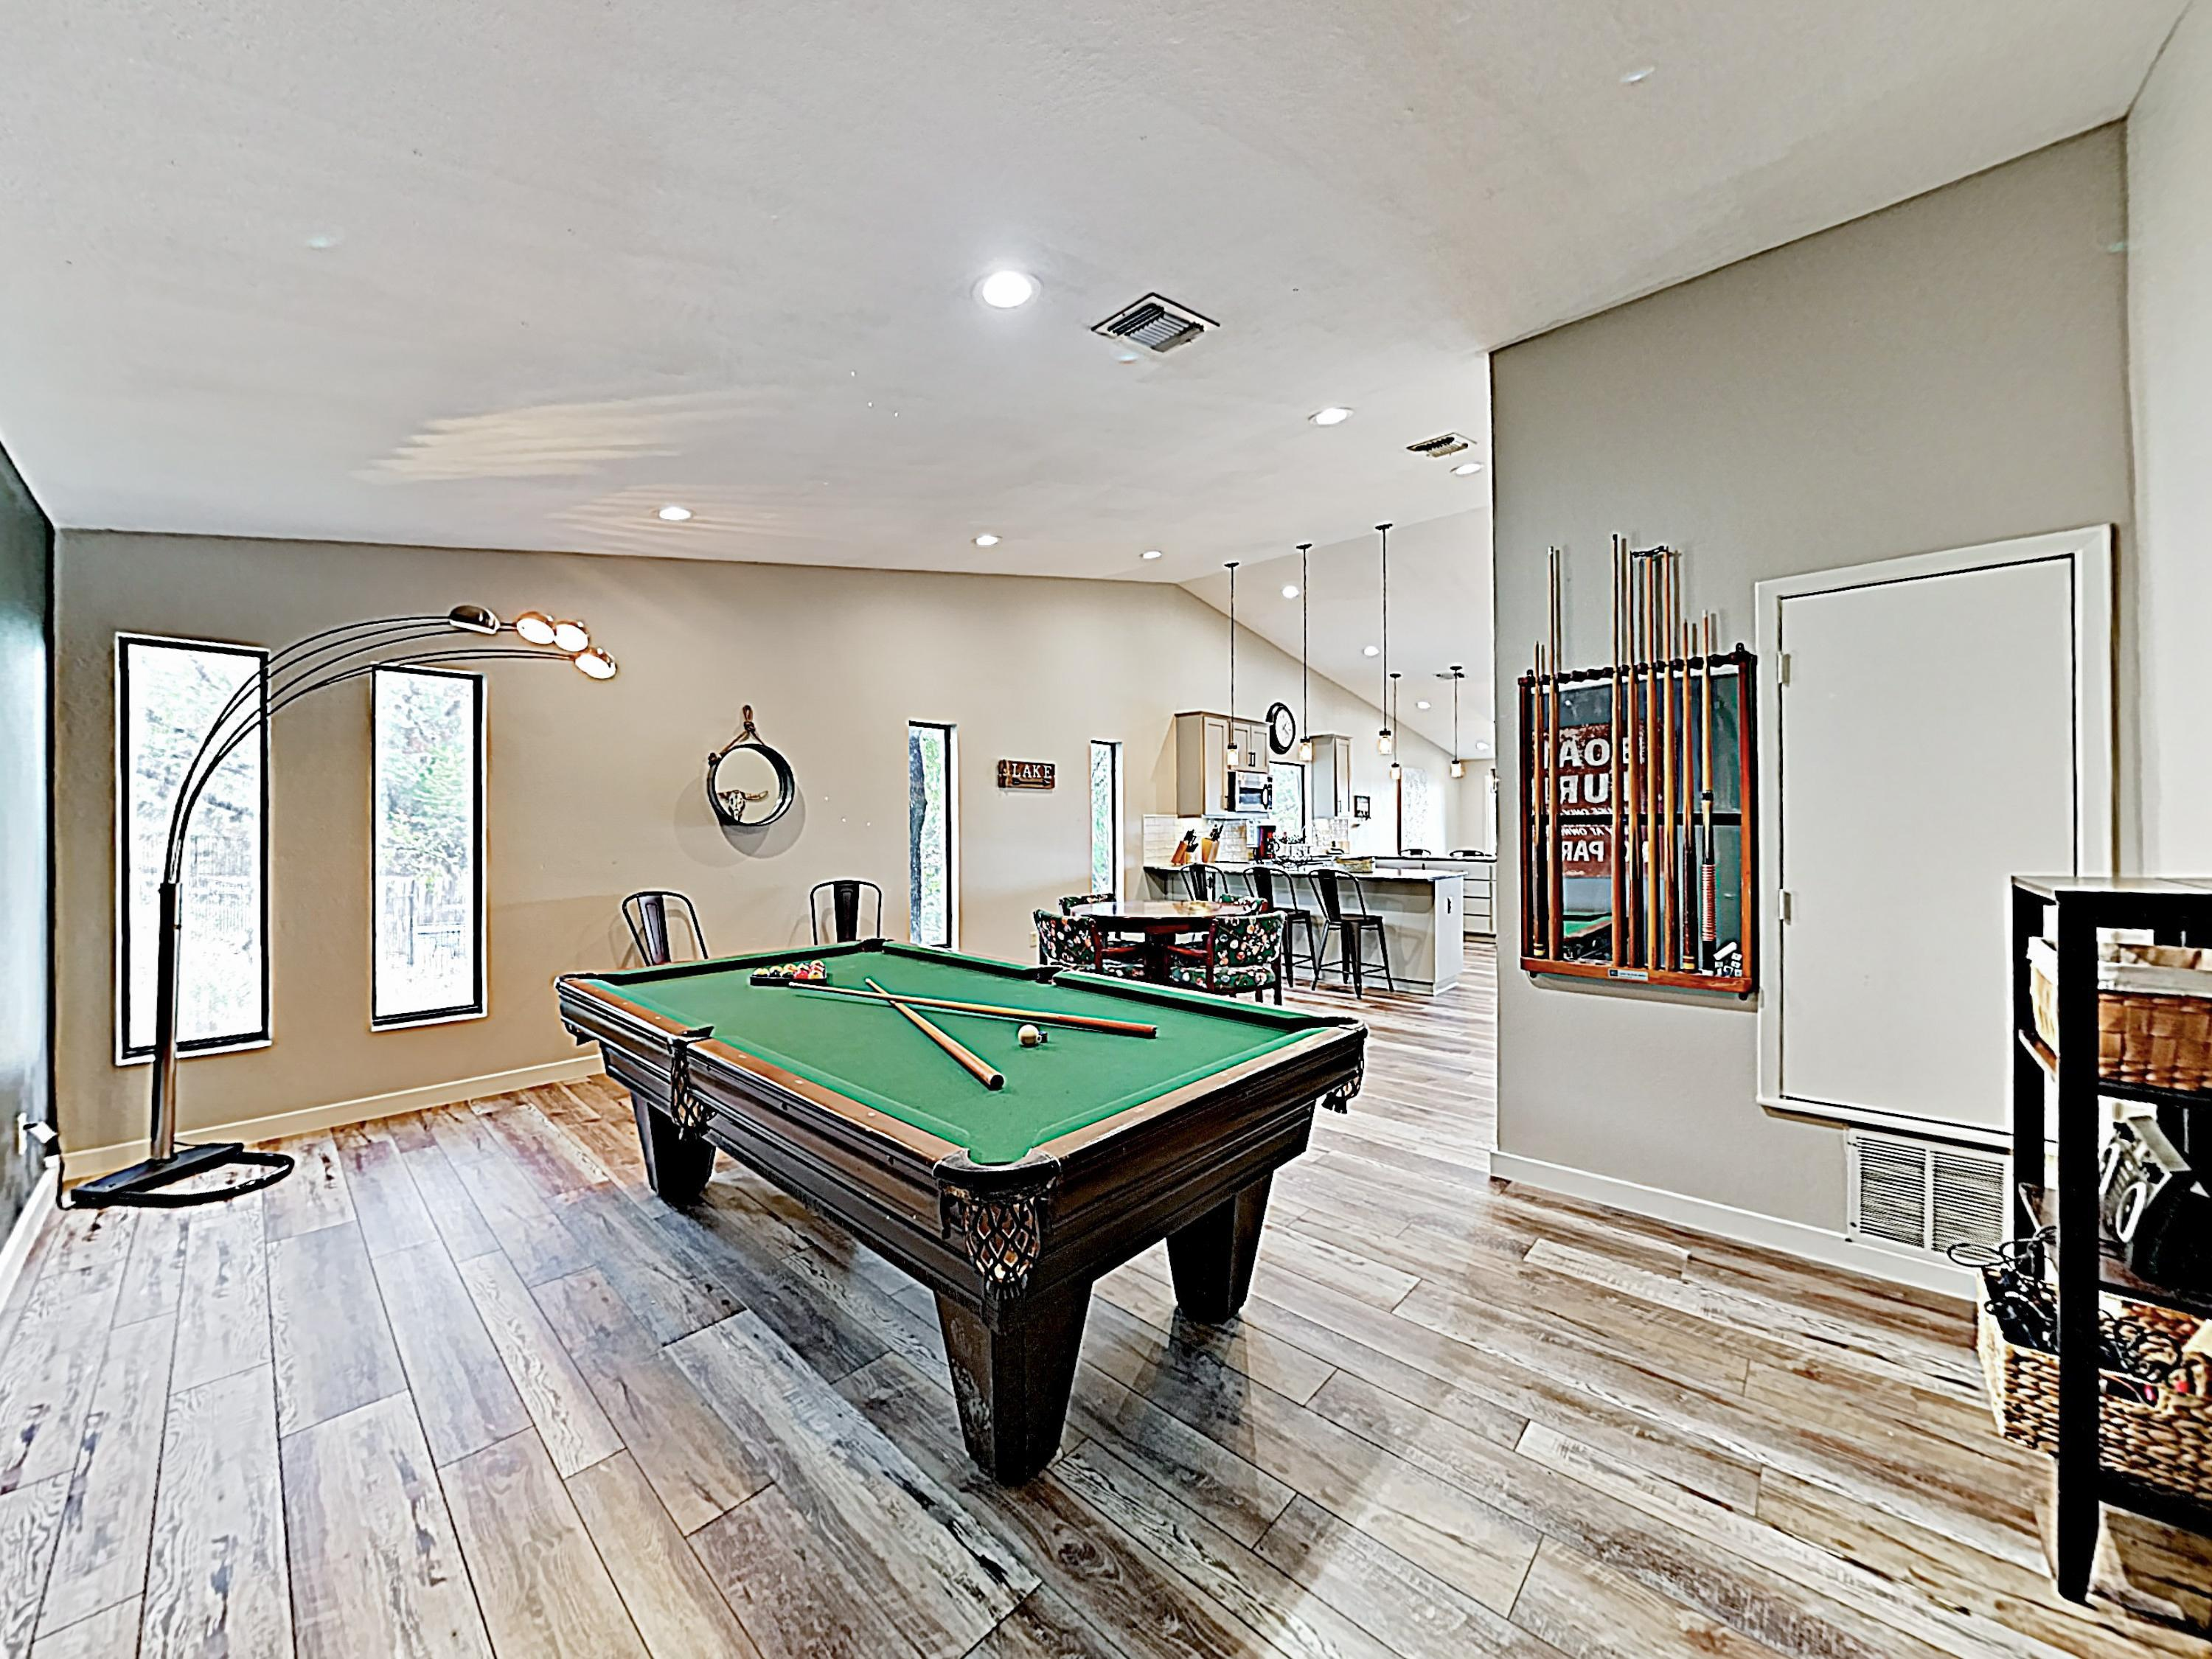 Hours of family fun await in the well-appointed game room!